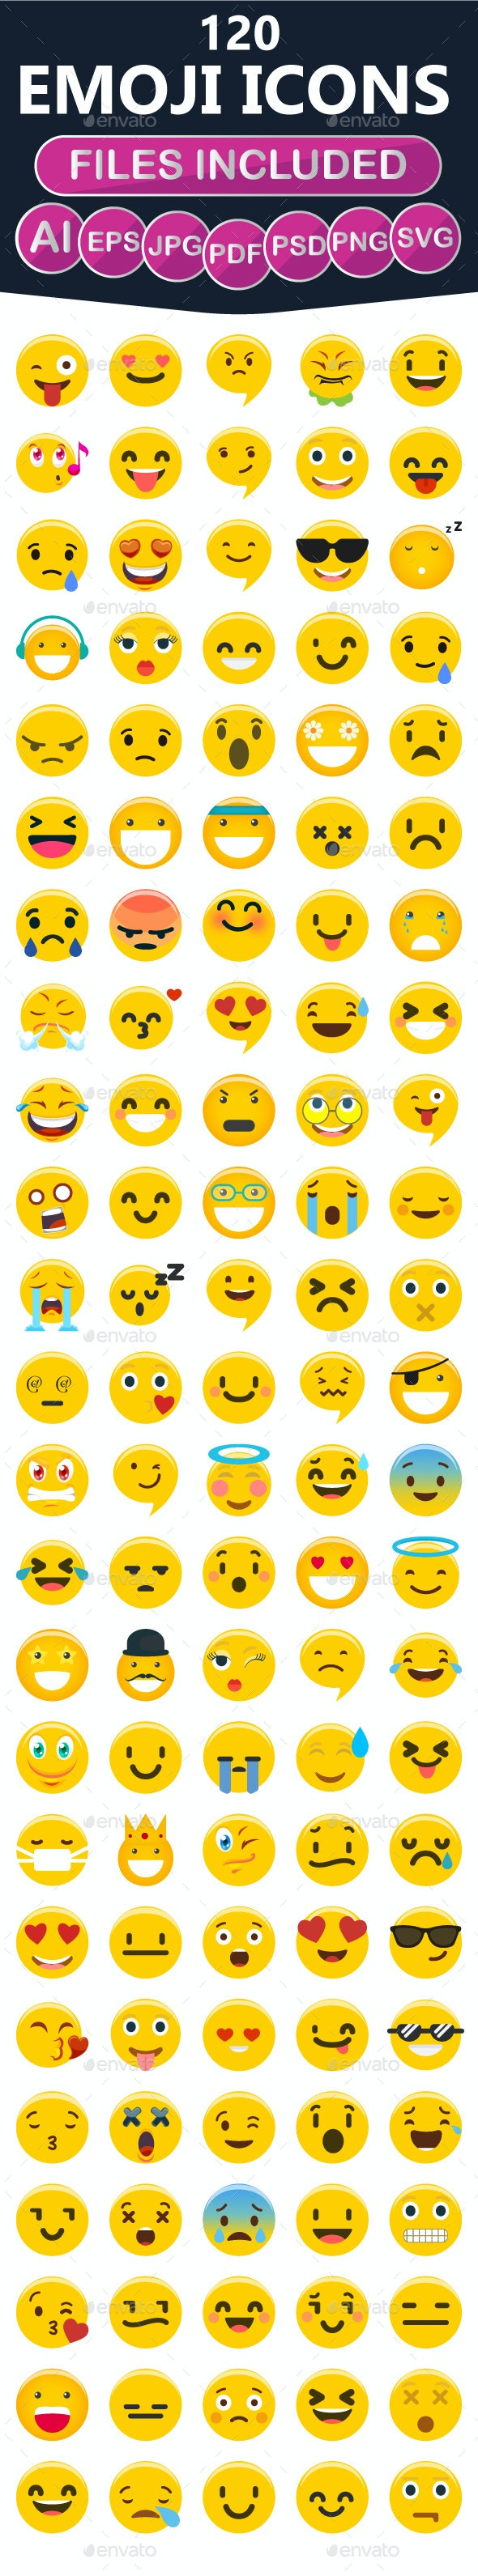 Expressions Emoticon Set - Icons